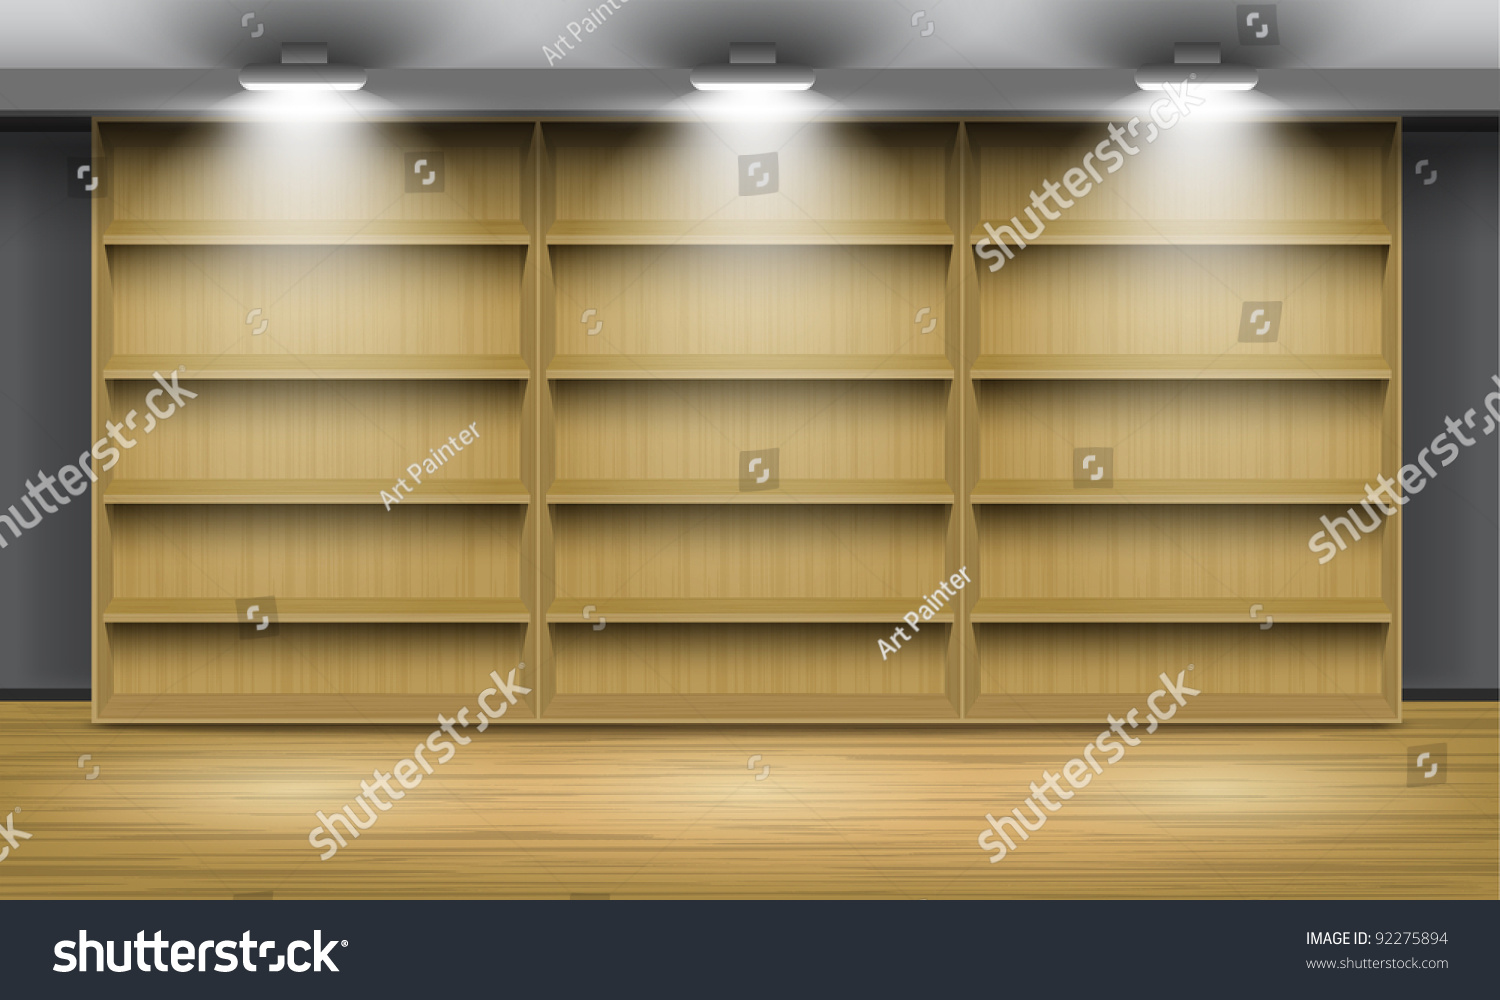 Interior wooden shelves free vector - Empty Wooden Shelves Illuminated By Searchlights Part Of Set Vector Interior